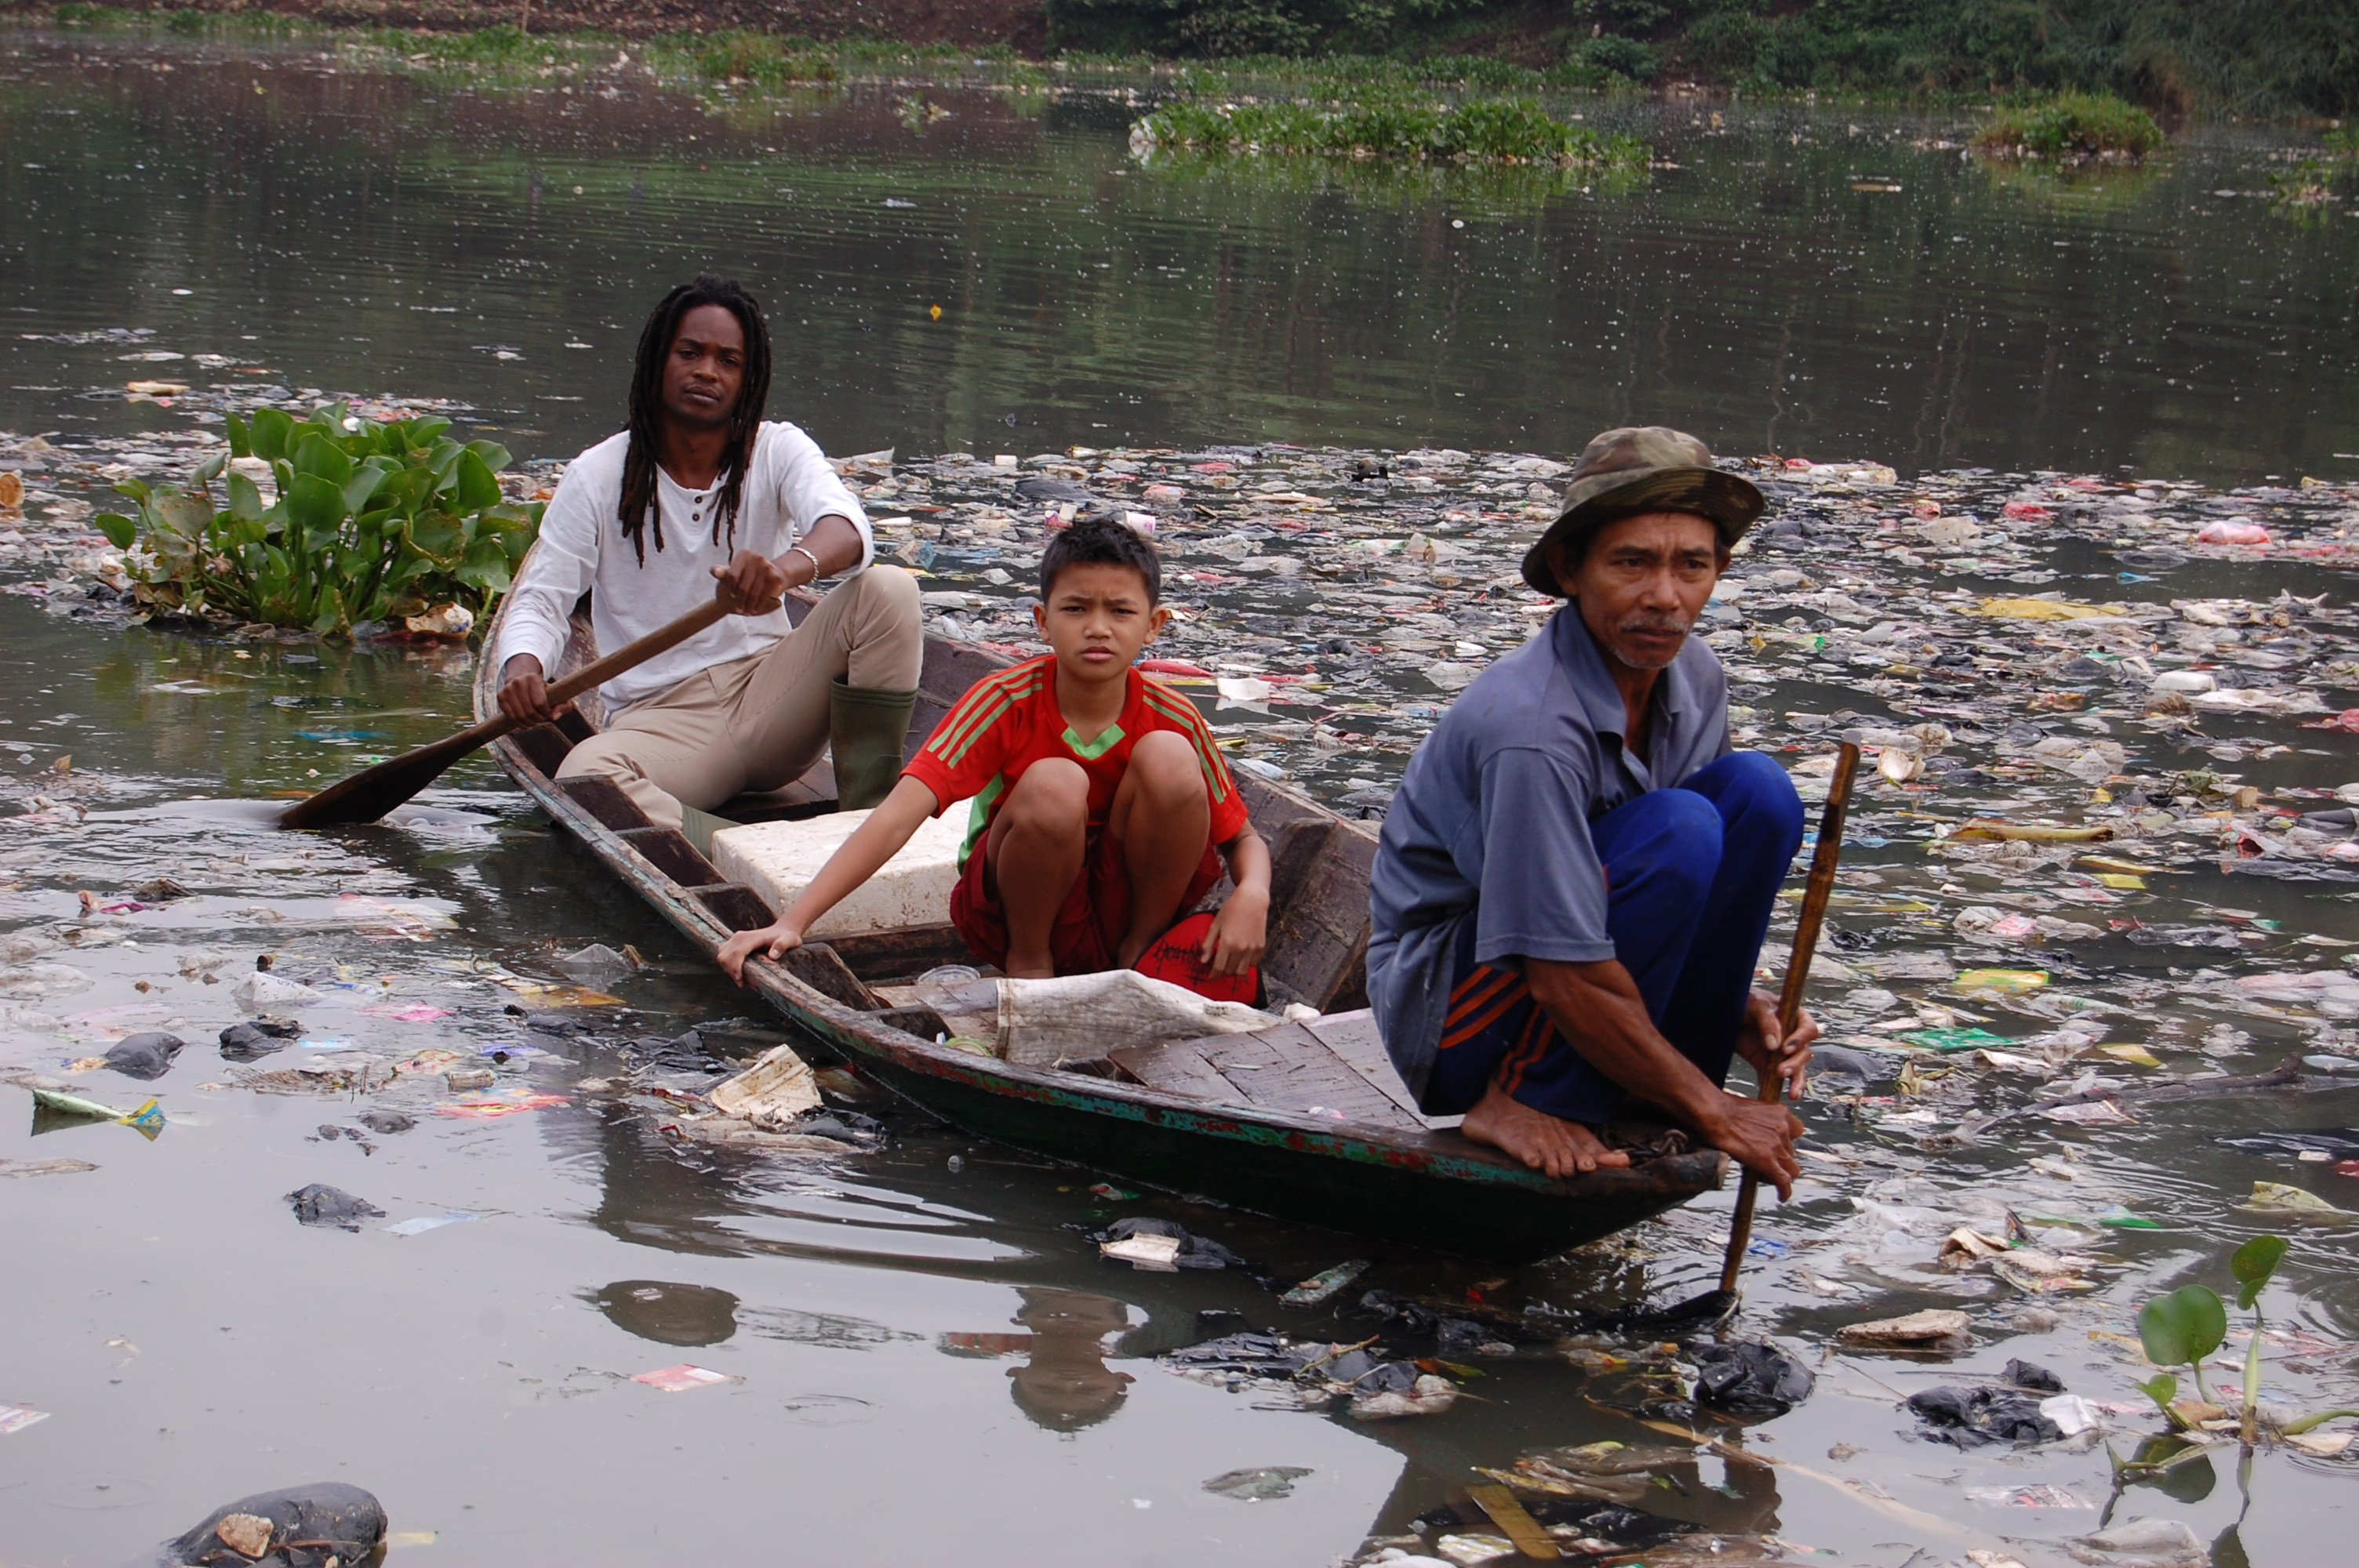 The Worlds Most Polluted River